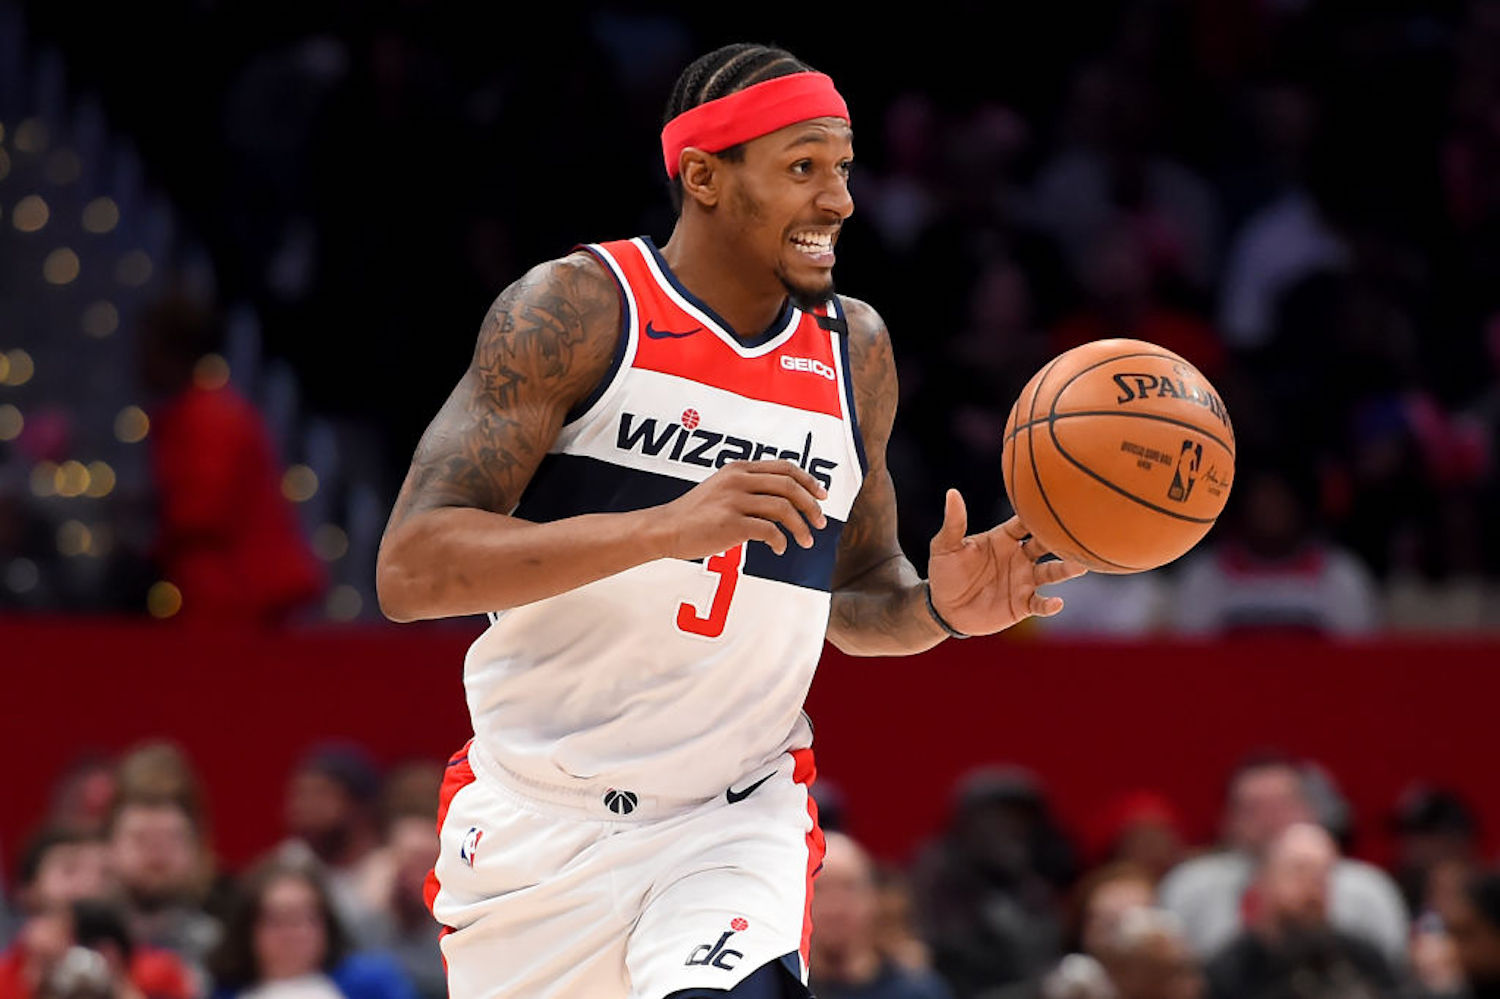 Bradley Beal has been looking to get out of Washington for a while now, and his newest purchase might've given away his preferred destination.